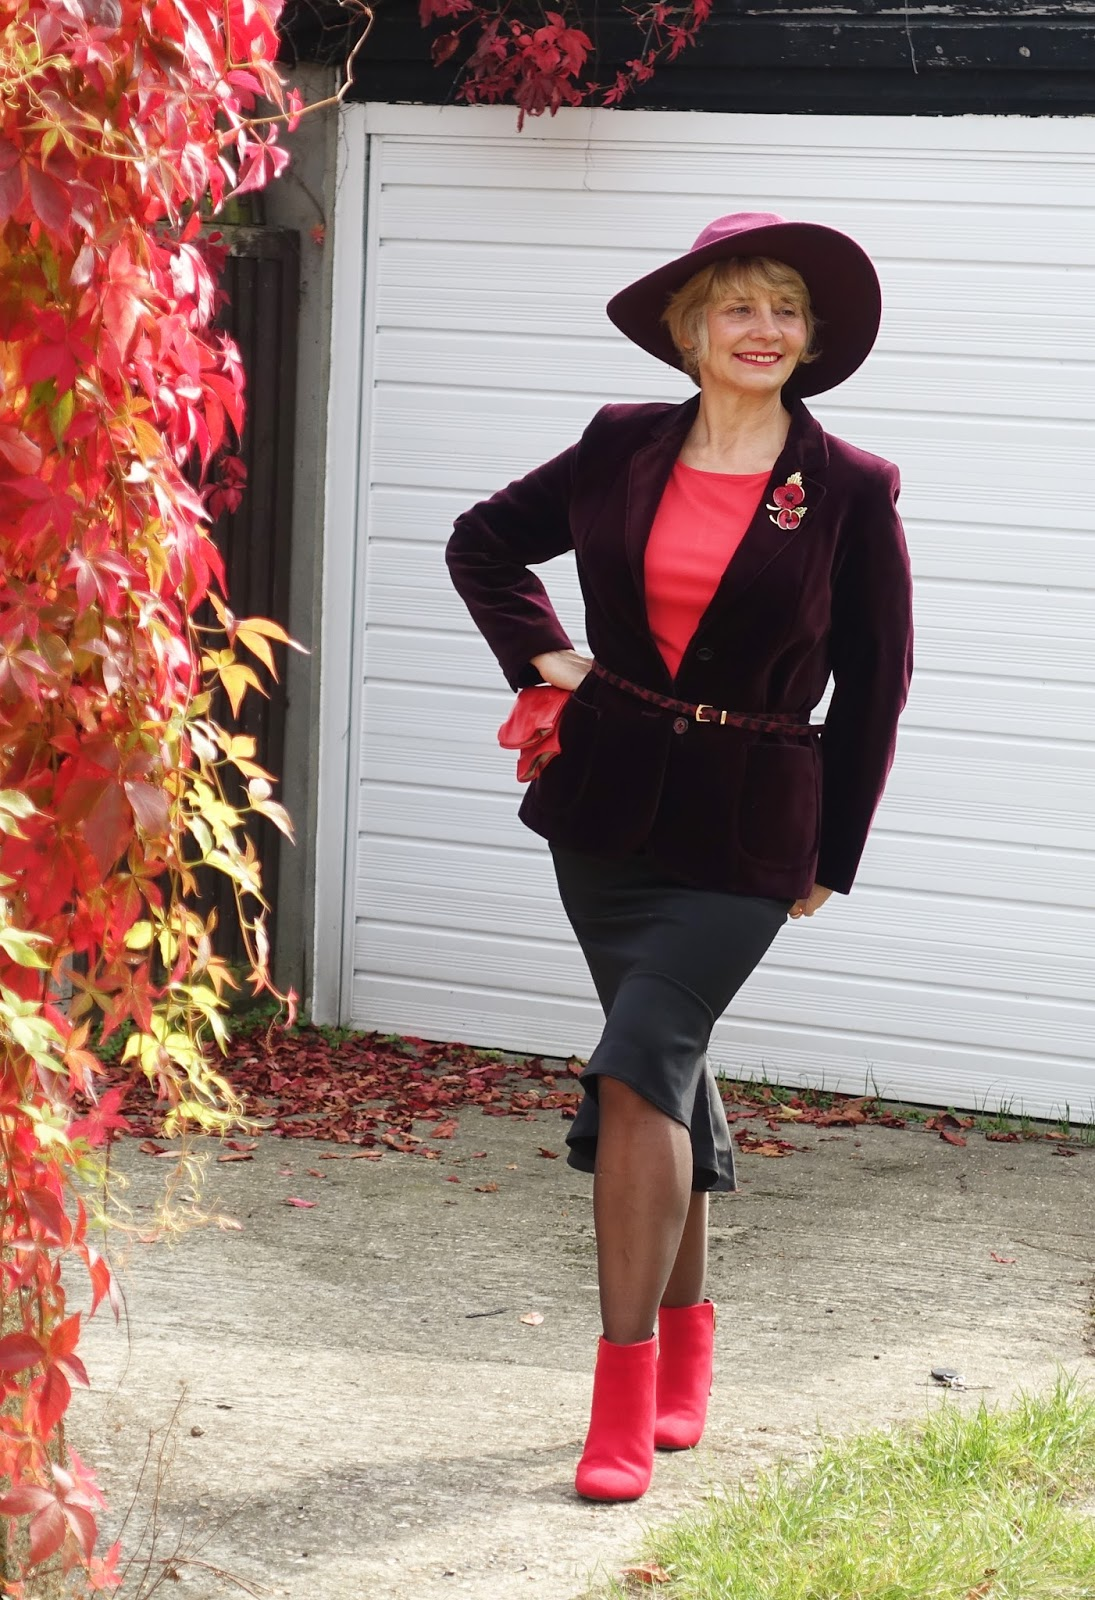 Gail Hanlon in burgundy fedora hat and mixing red with burgundy